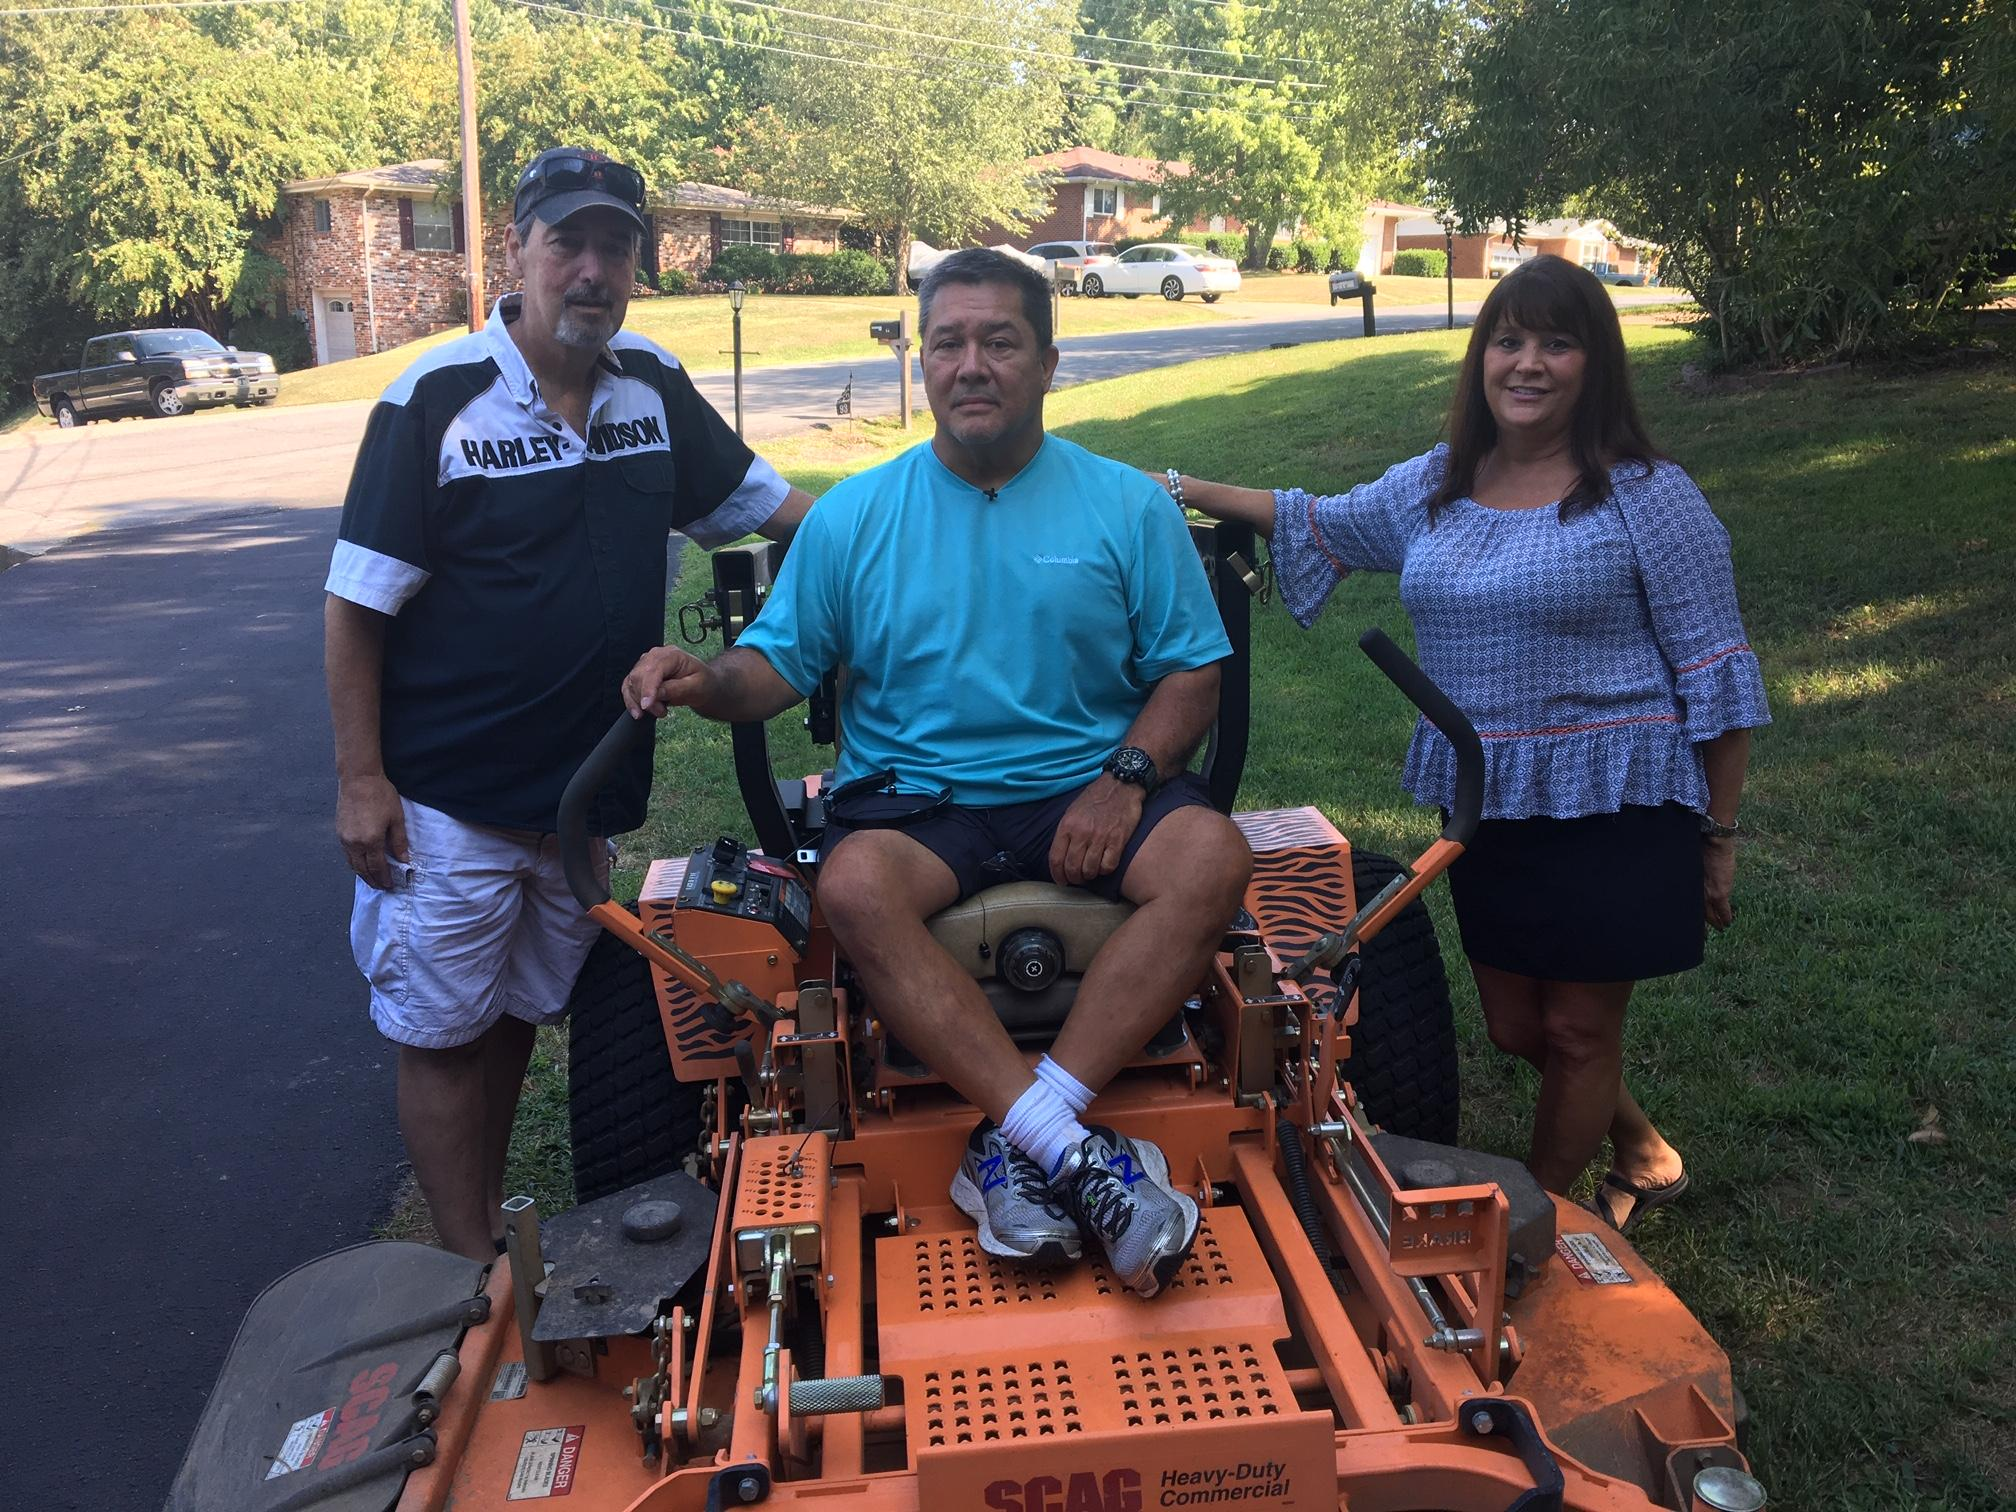 Chris Hays (pictured here between Scott and Annette Jackson) says he wants yard work not to be something his neighbors have to worry about. (Image: WTVC)<p></p><p></p>